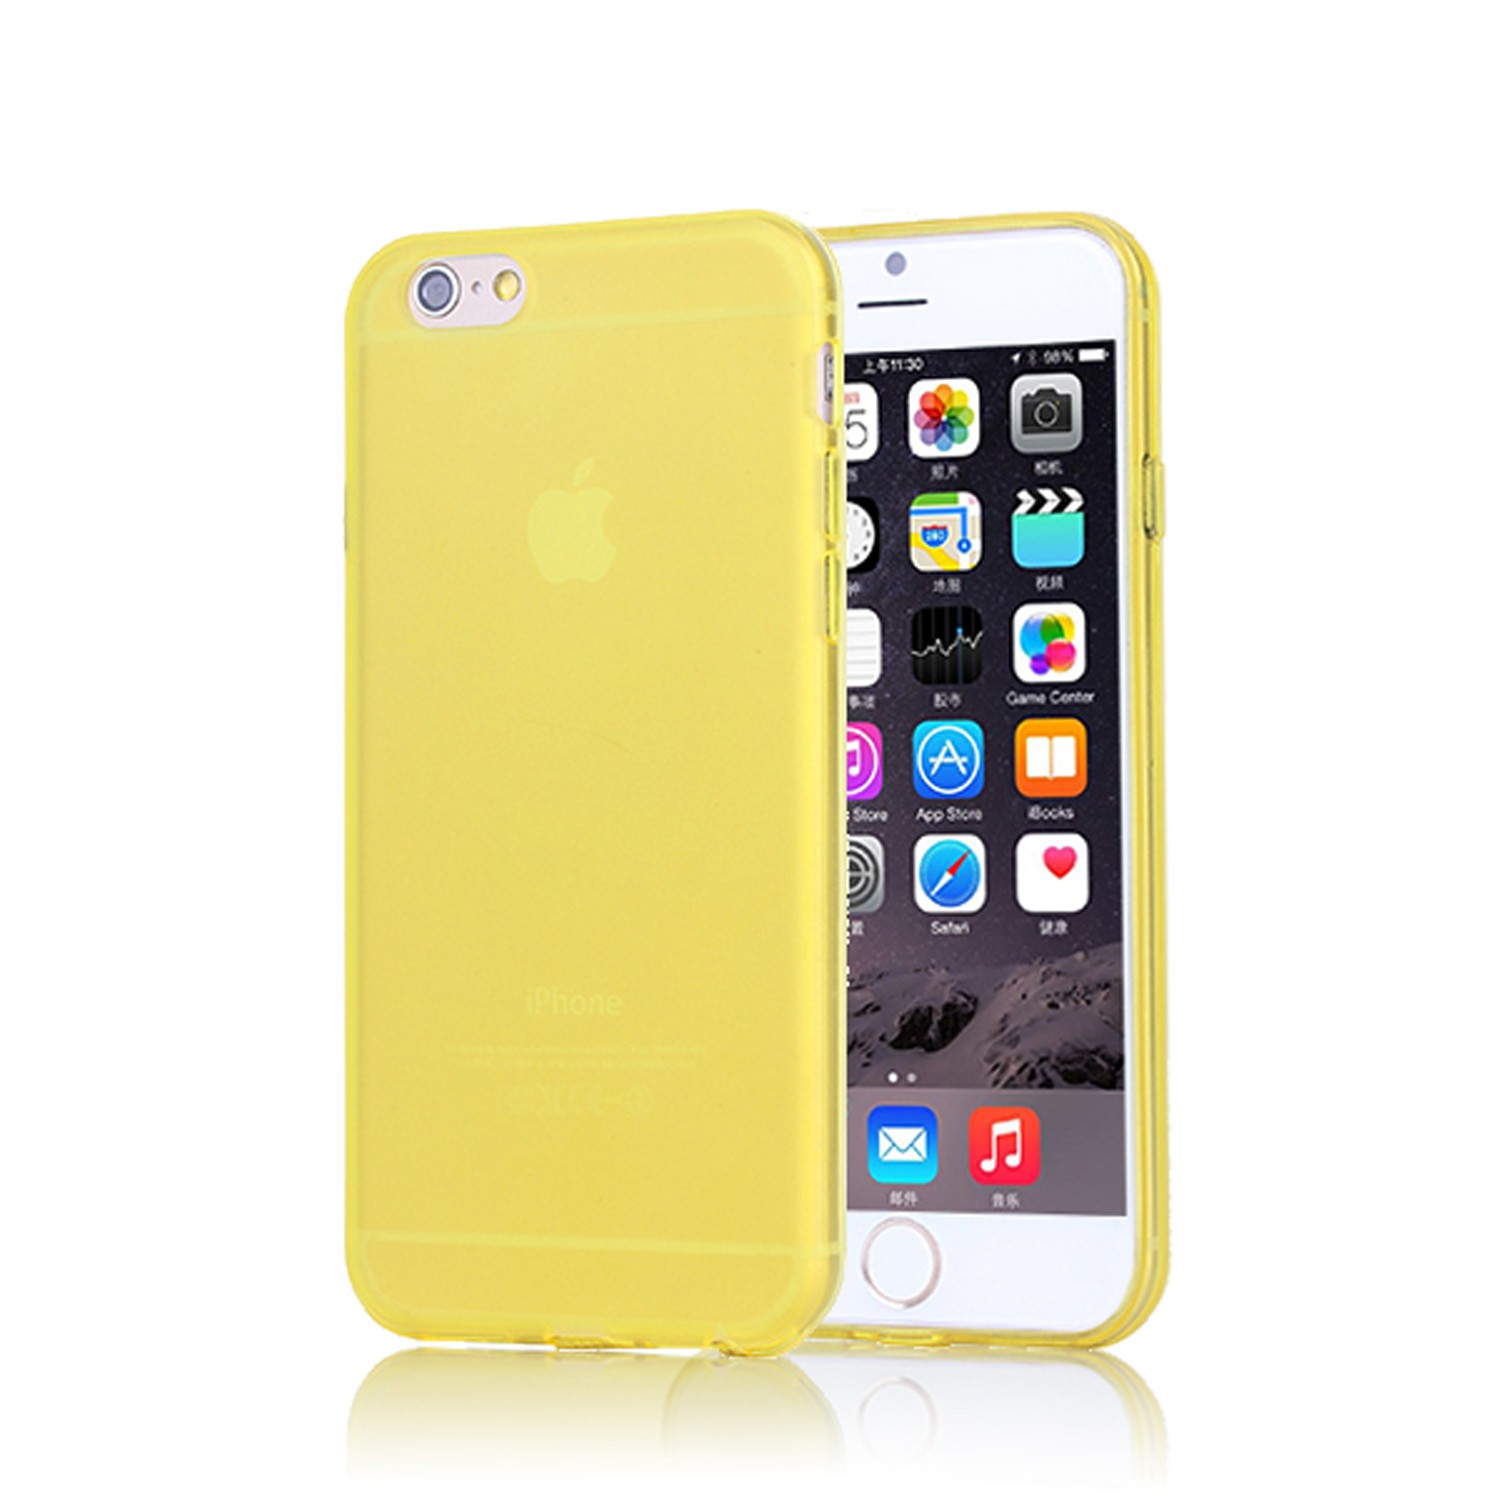 Yemota Pro Softcase iPhone 6s - Gelb